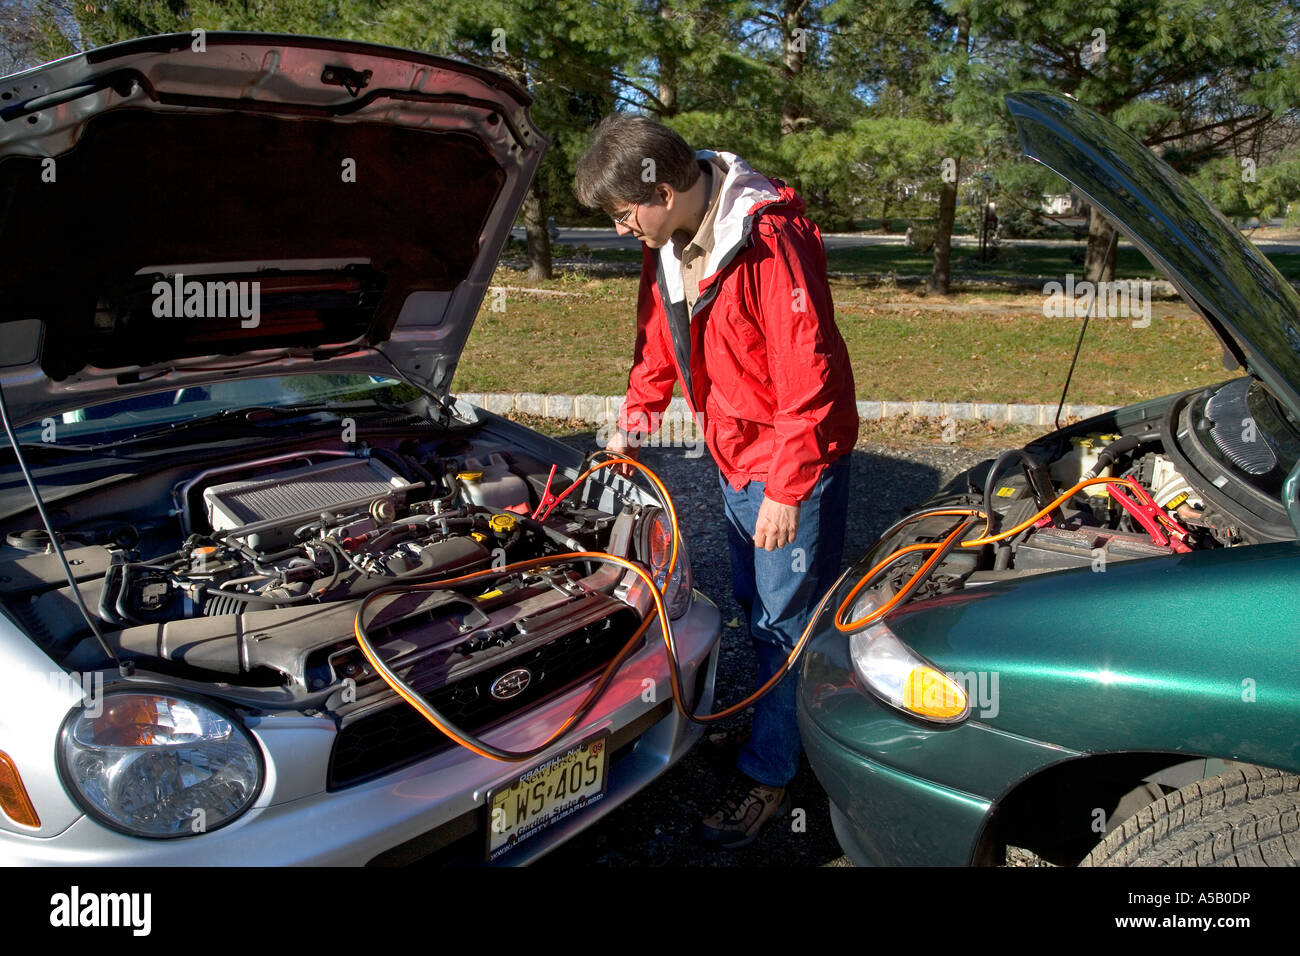 How To Start A Car With A Dead Battery >> Using Jumper Cables To Start A Car W A Dead Battery Stock